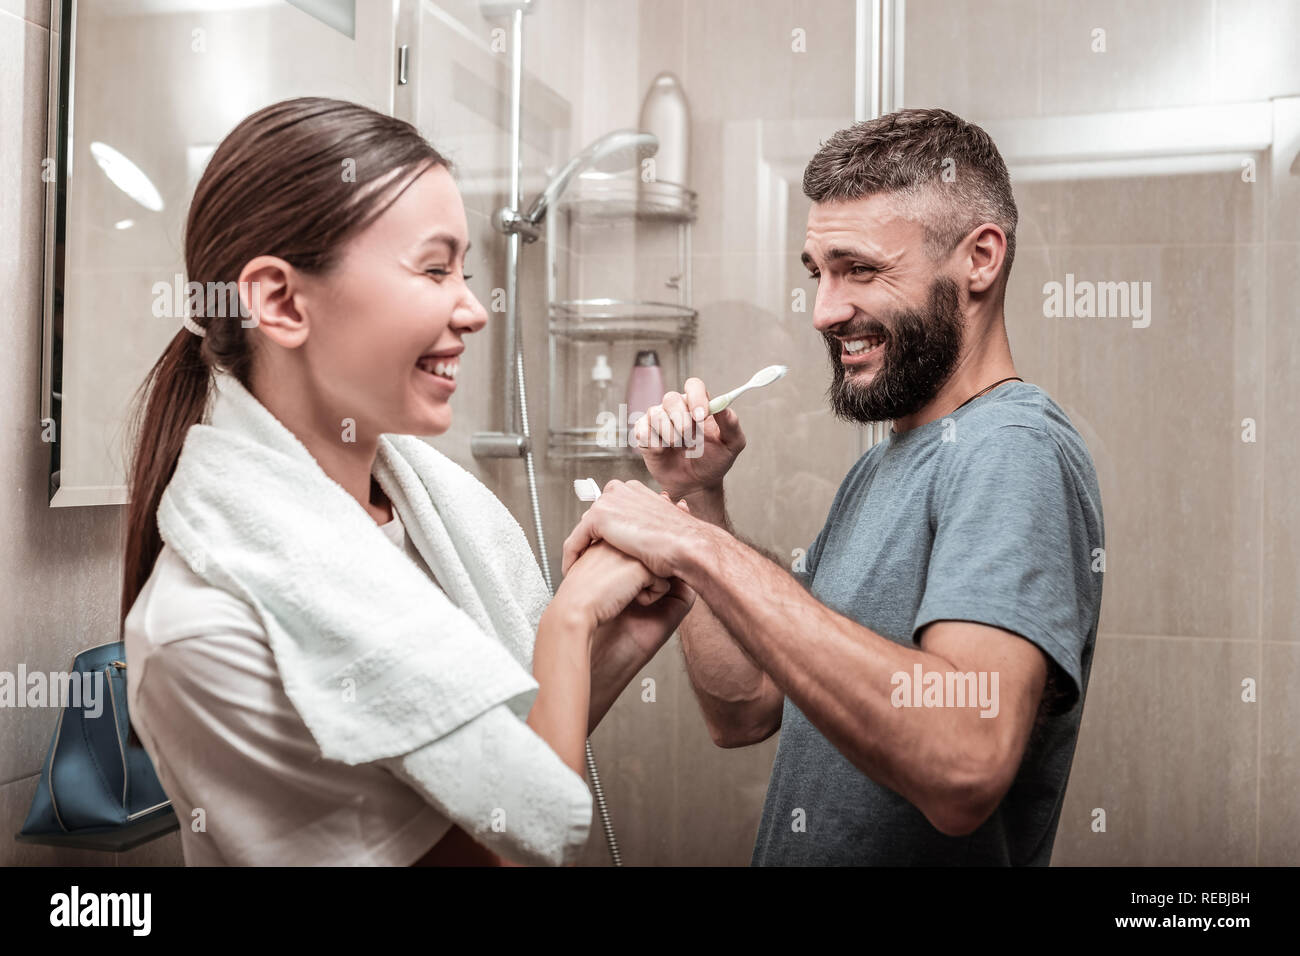 Dark-haired woman using cream for sensitive skin looking into mirror - Stock Image